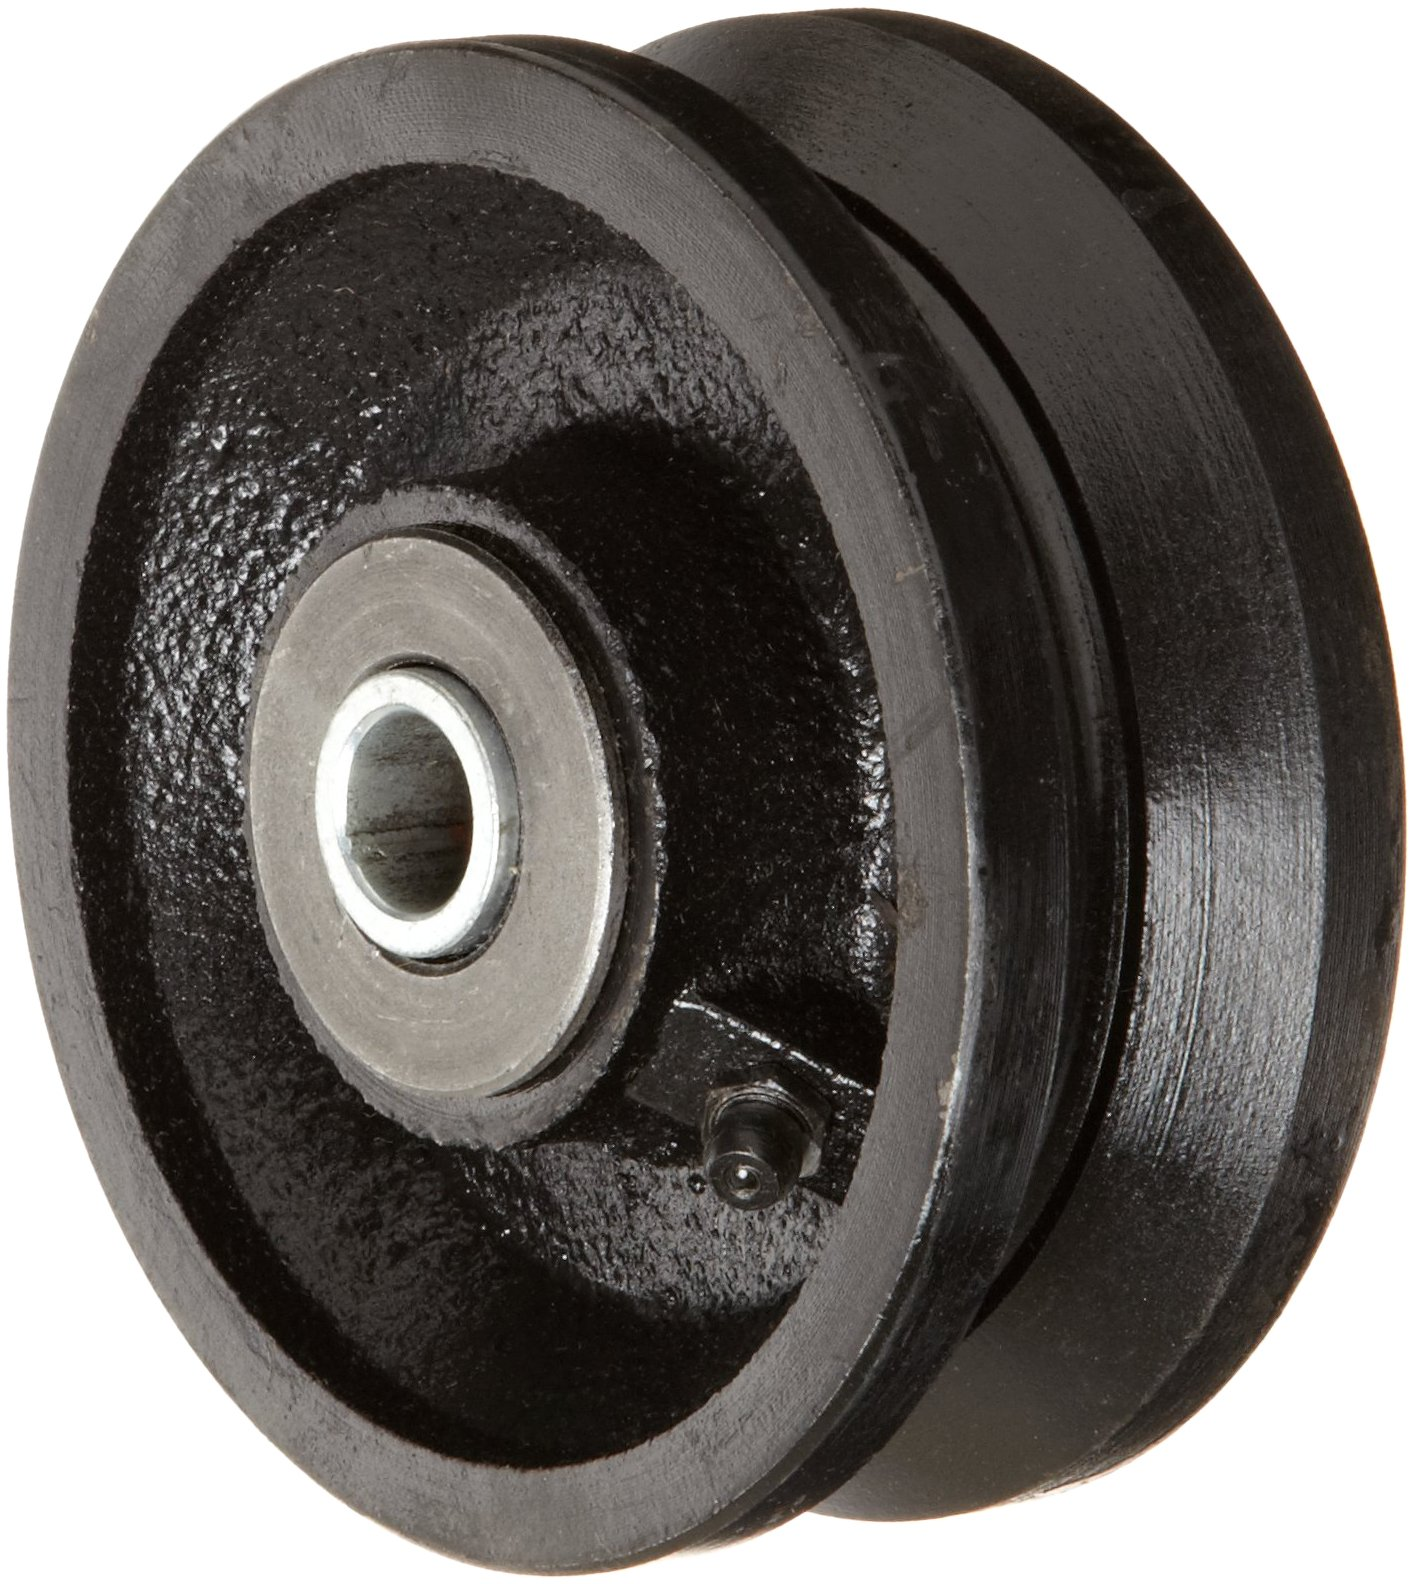 RWM Casters VIR-0415-08 4'' Diameter X 1-1/2'' Width Cast Iron V-Groove Wheel with Straight Roller Bearing, 700 lbs Capacity